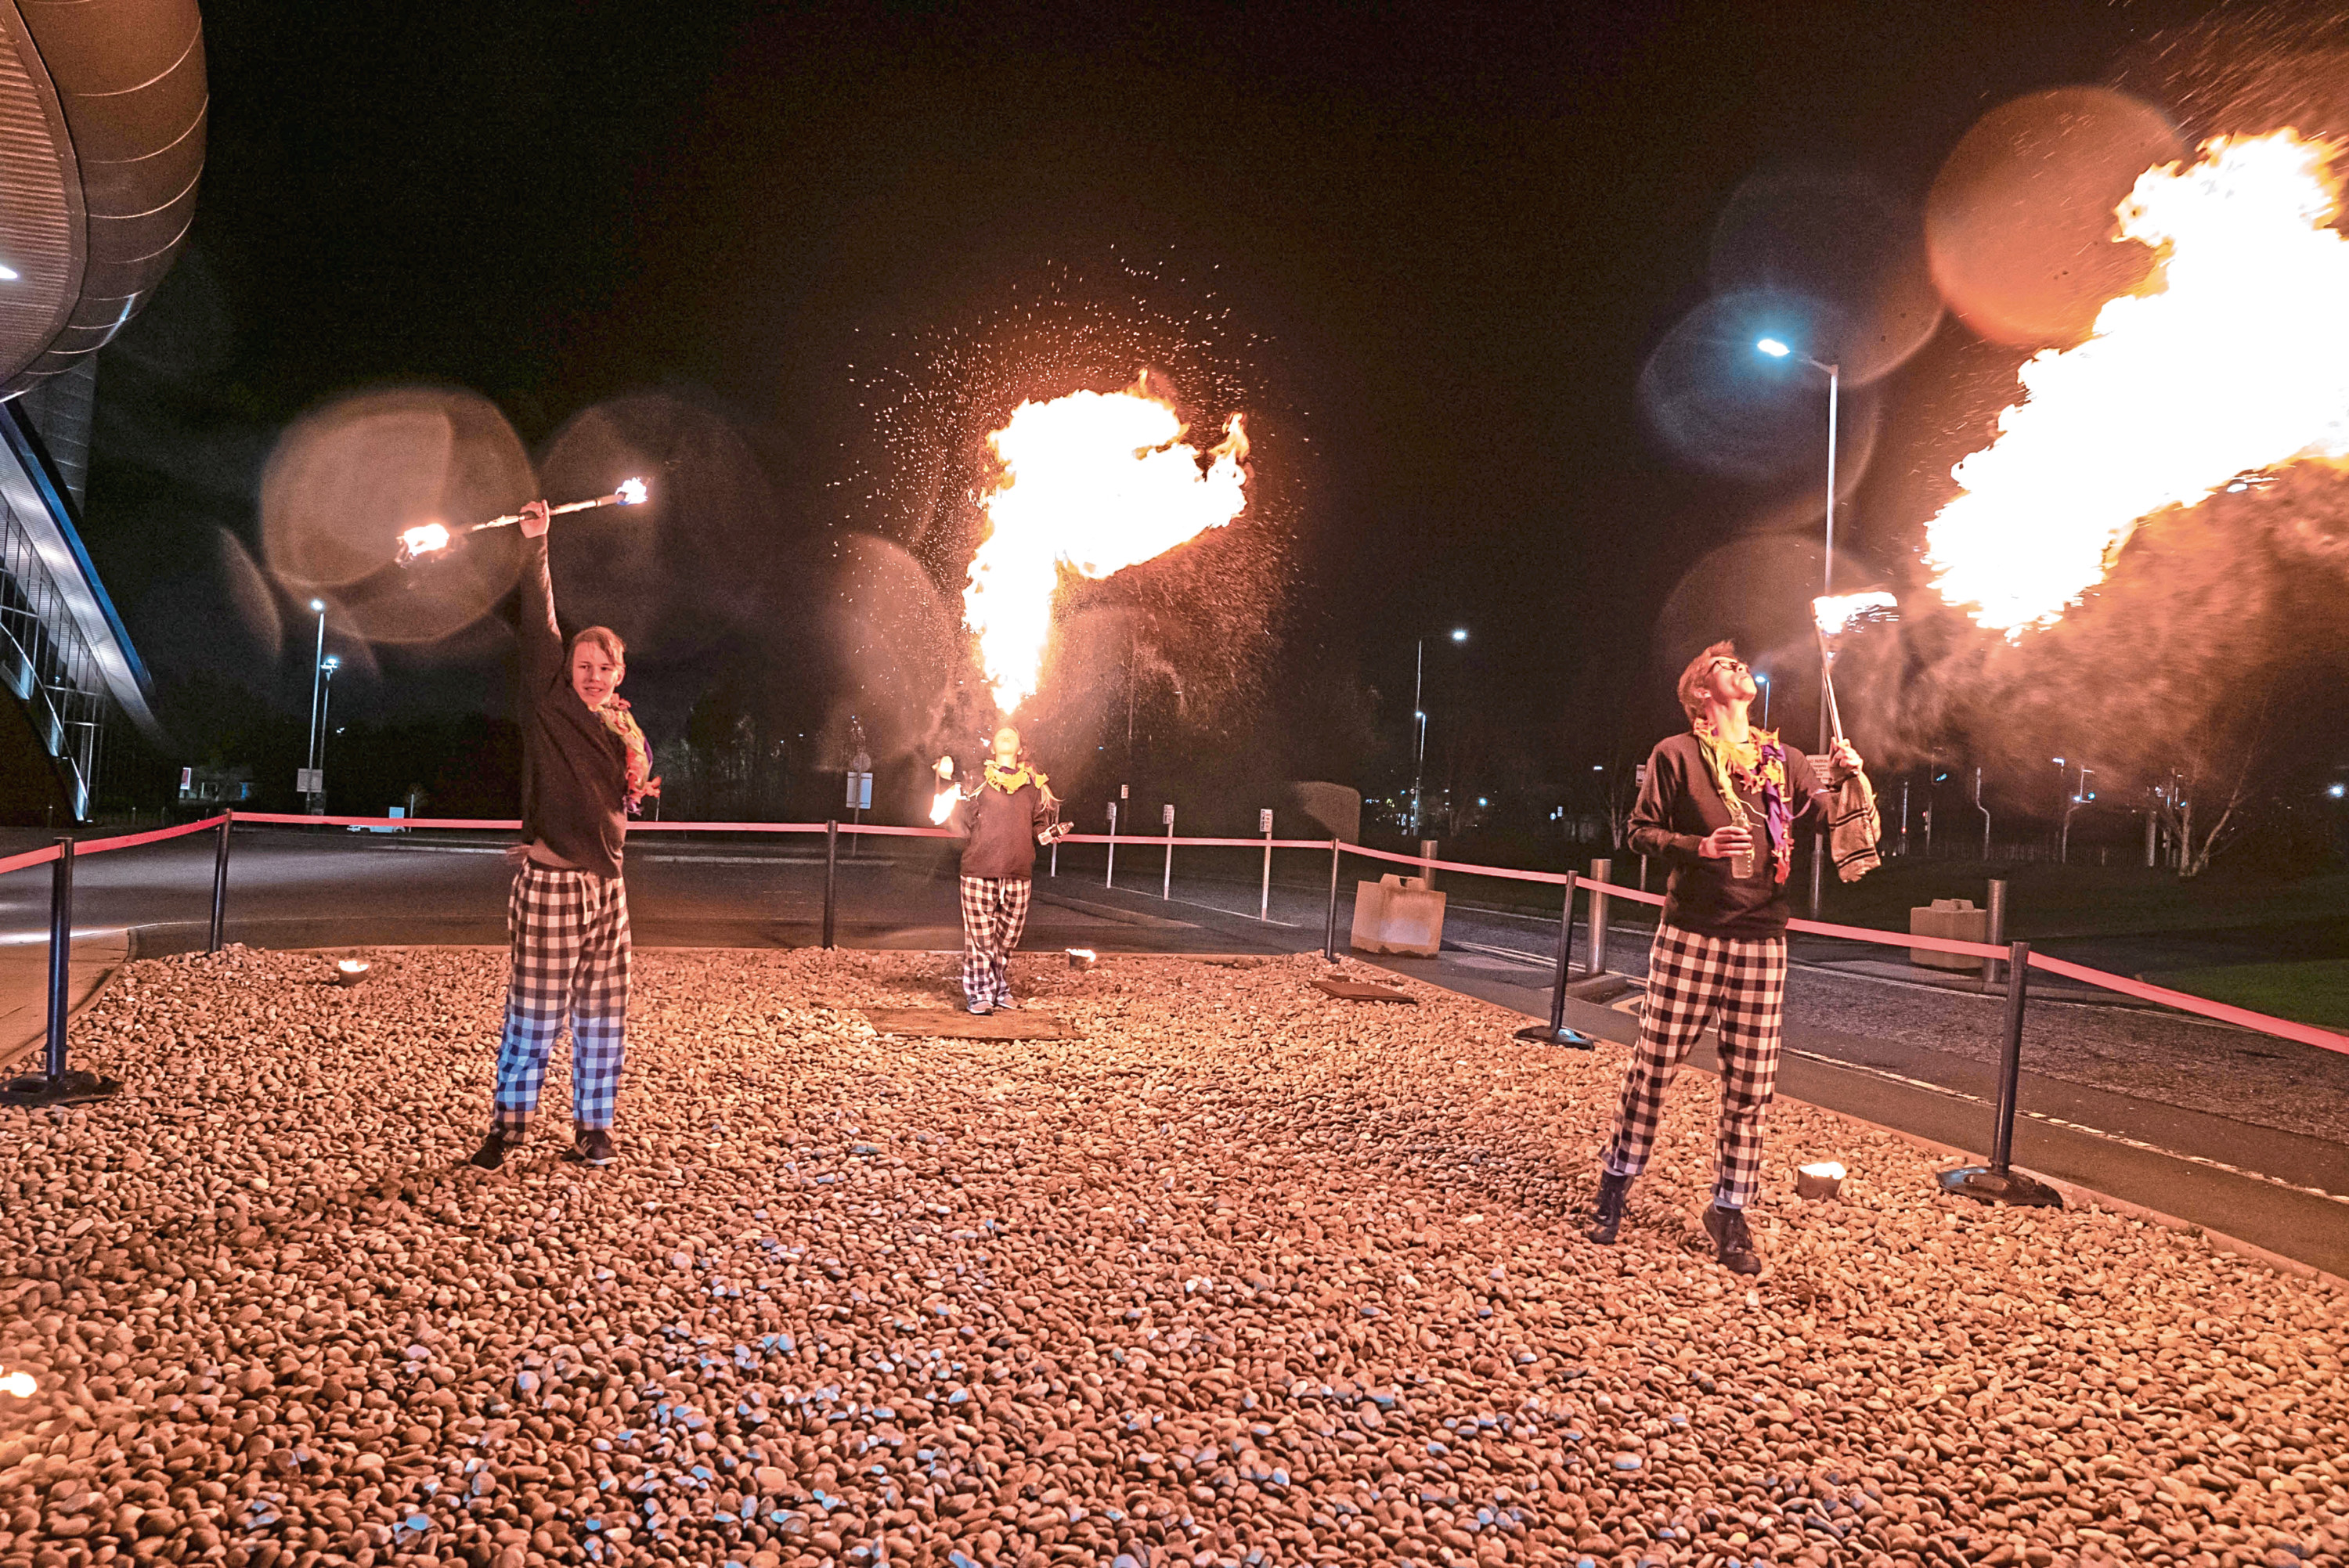 Guests attending last year's ball were entertained by dancers and these fire breathers